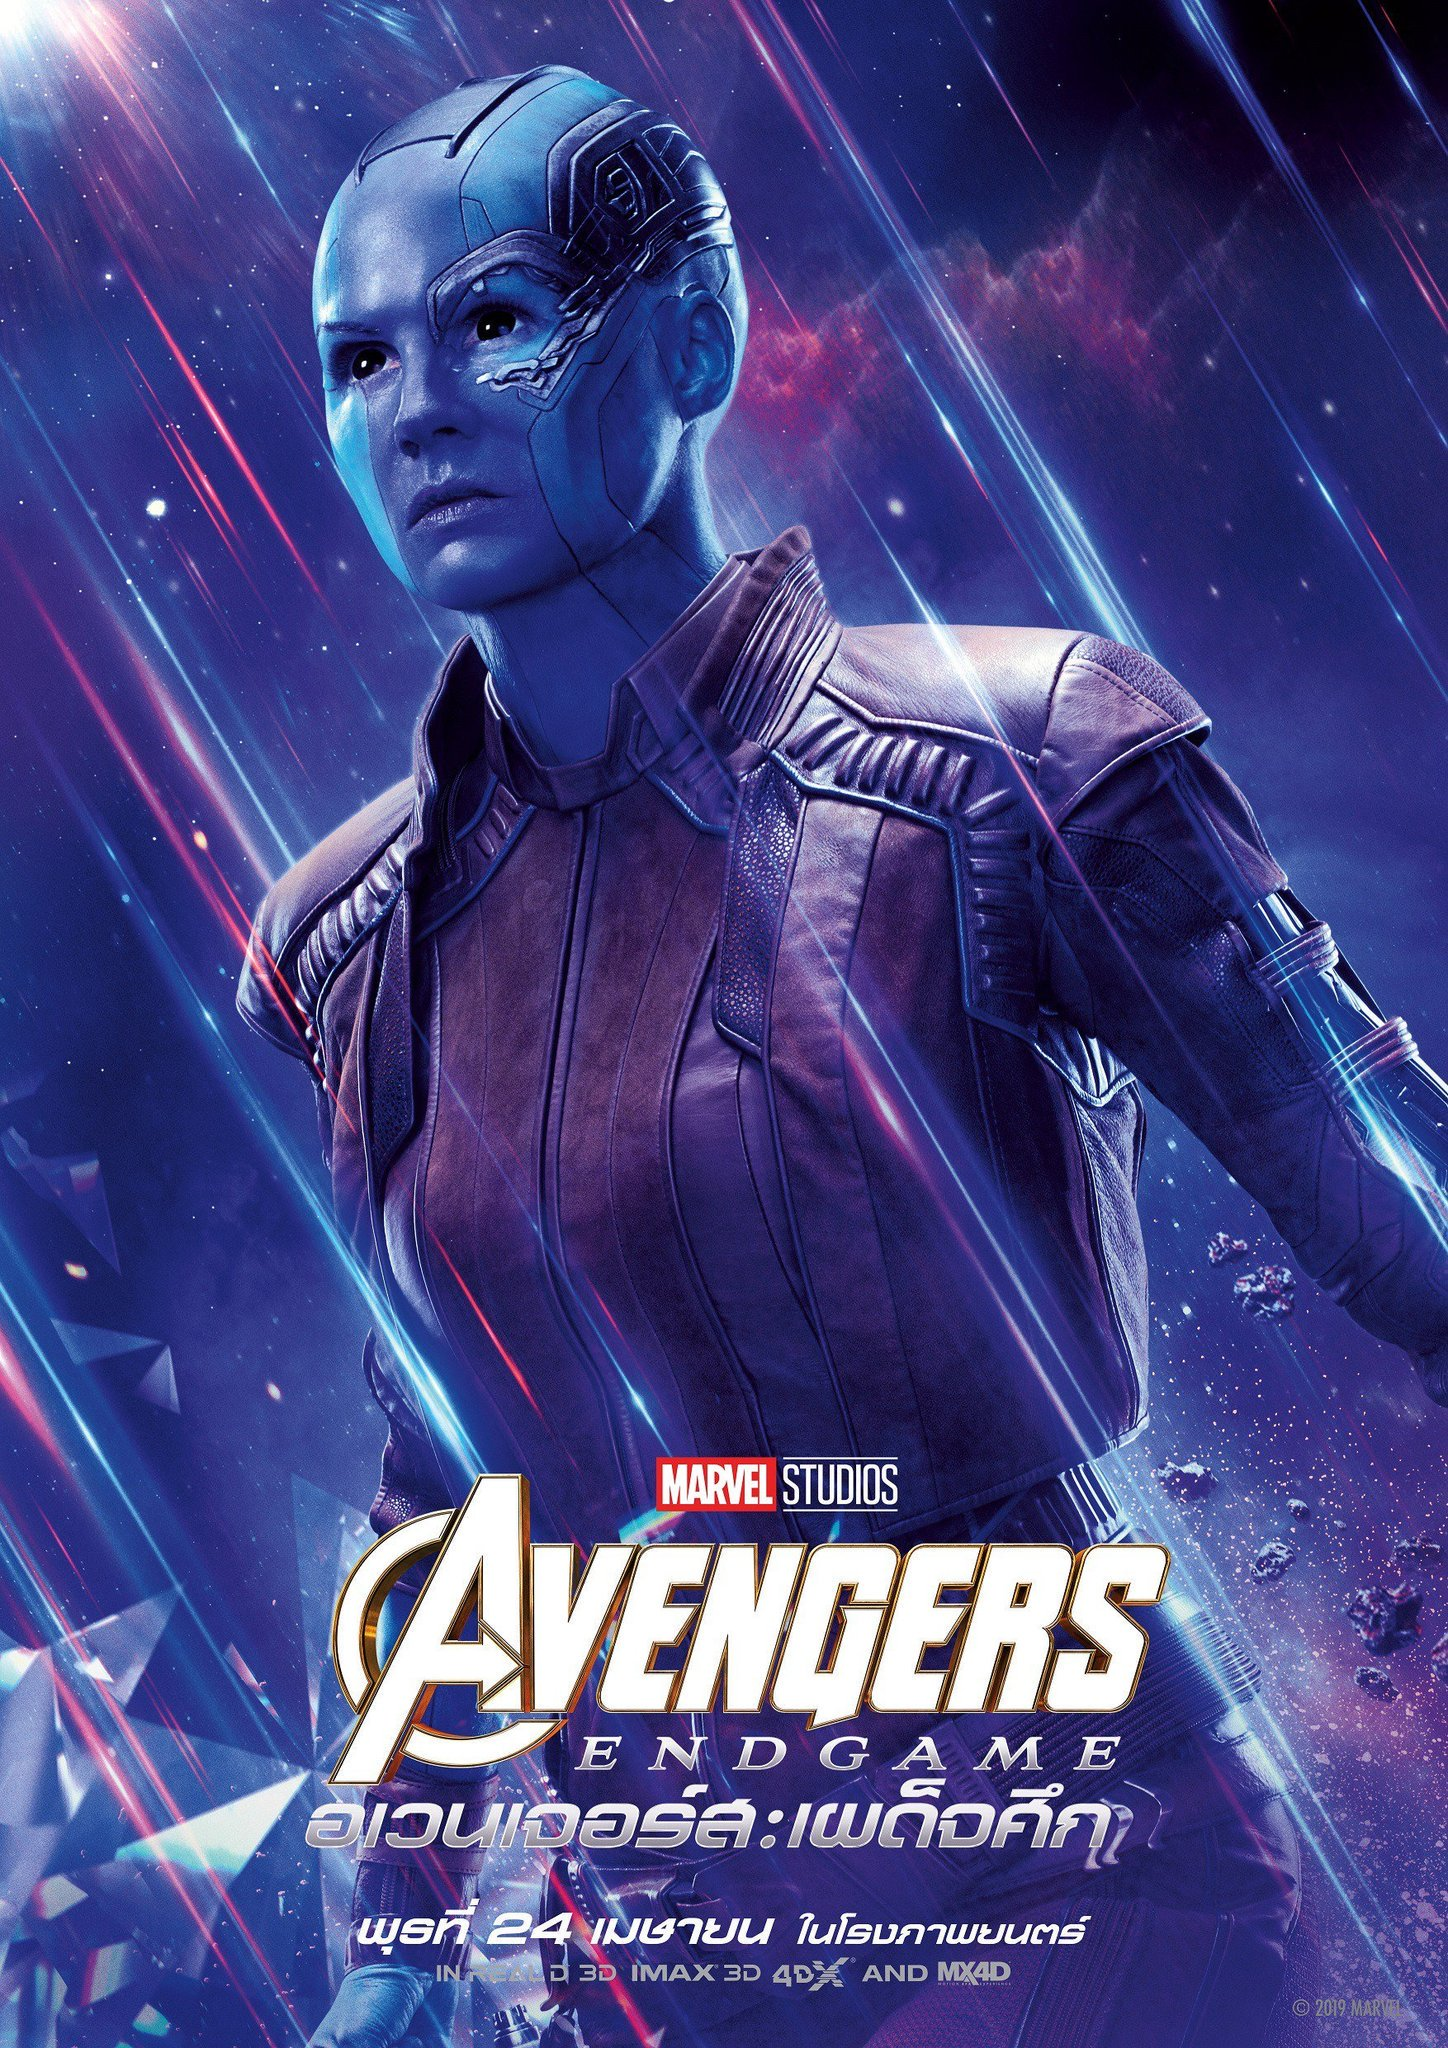 avengers endgame character posters - nebula  Lyles Movie Files